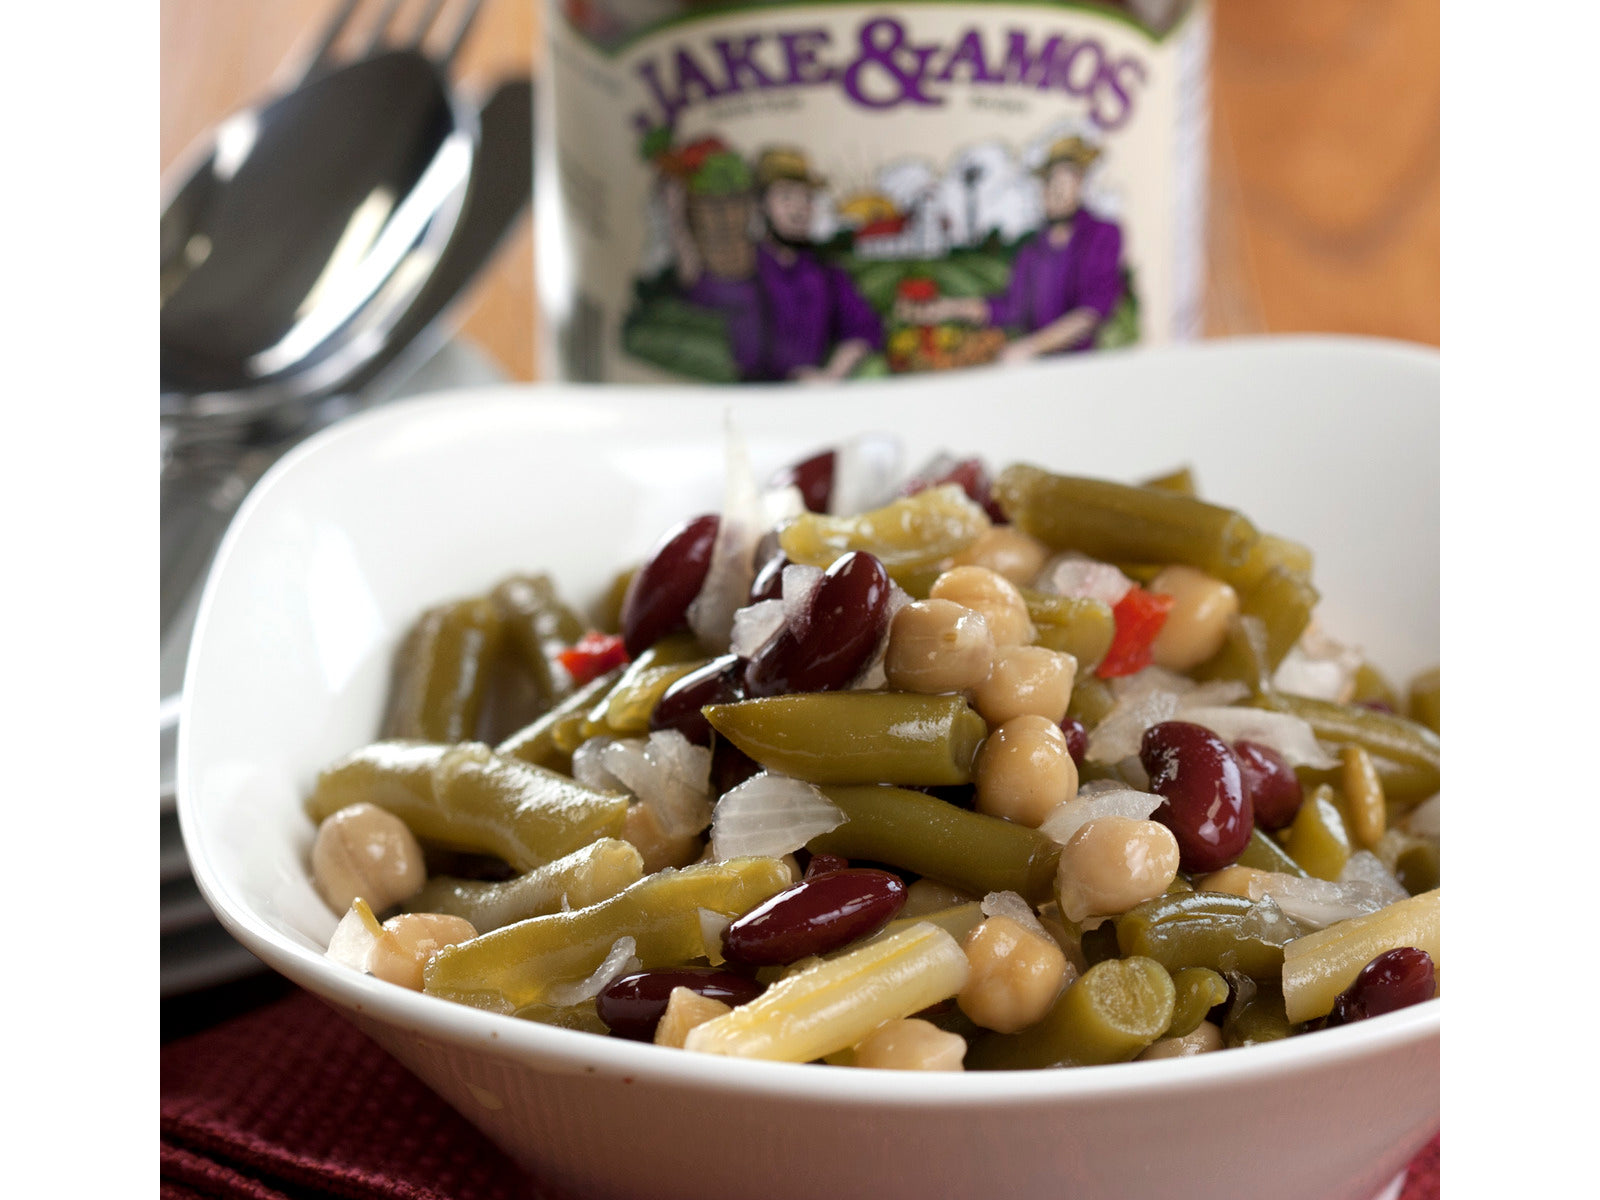 Pickled Four Bean Salad - Jake & Amos